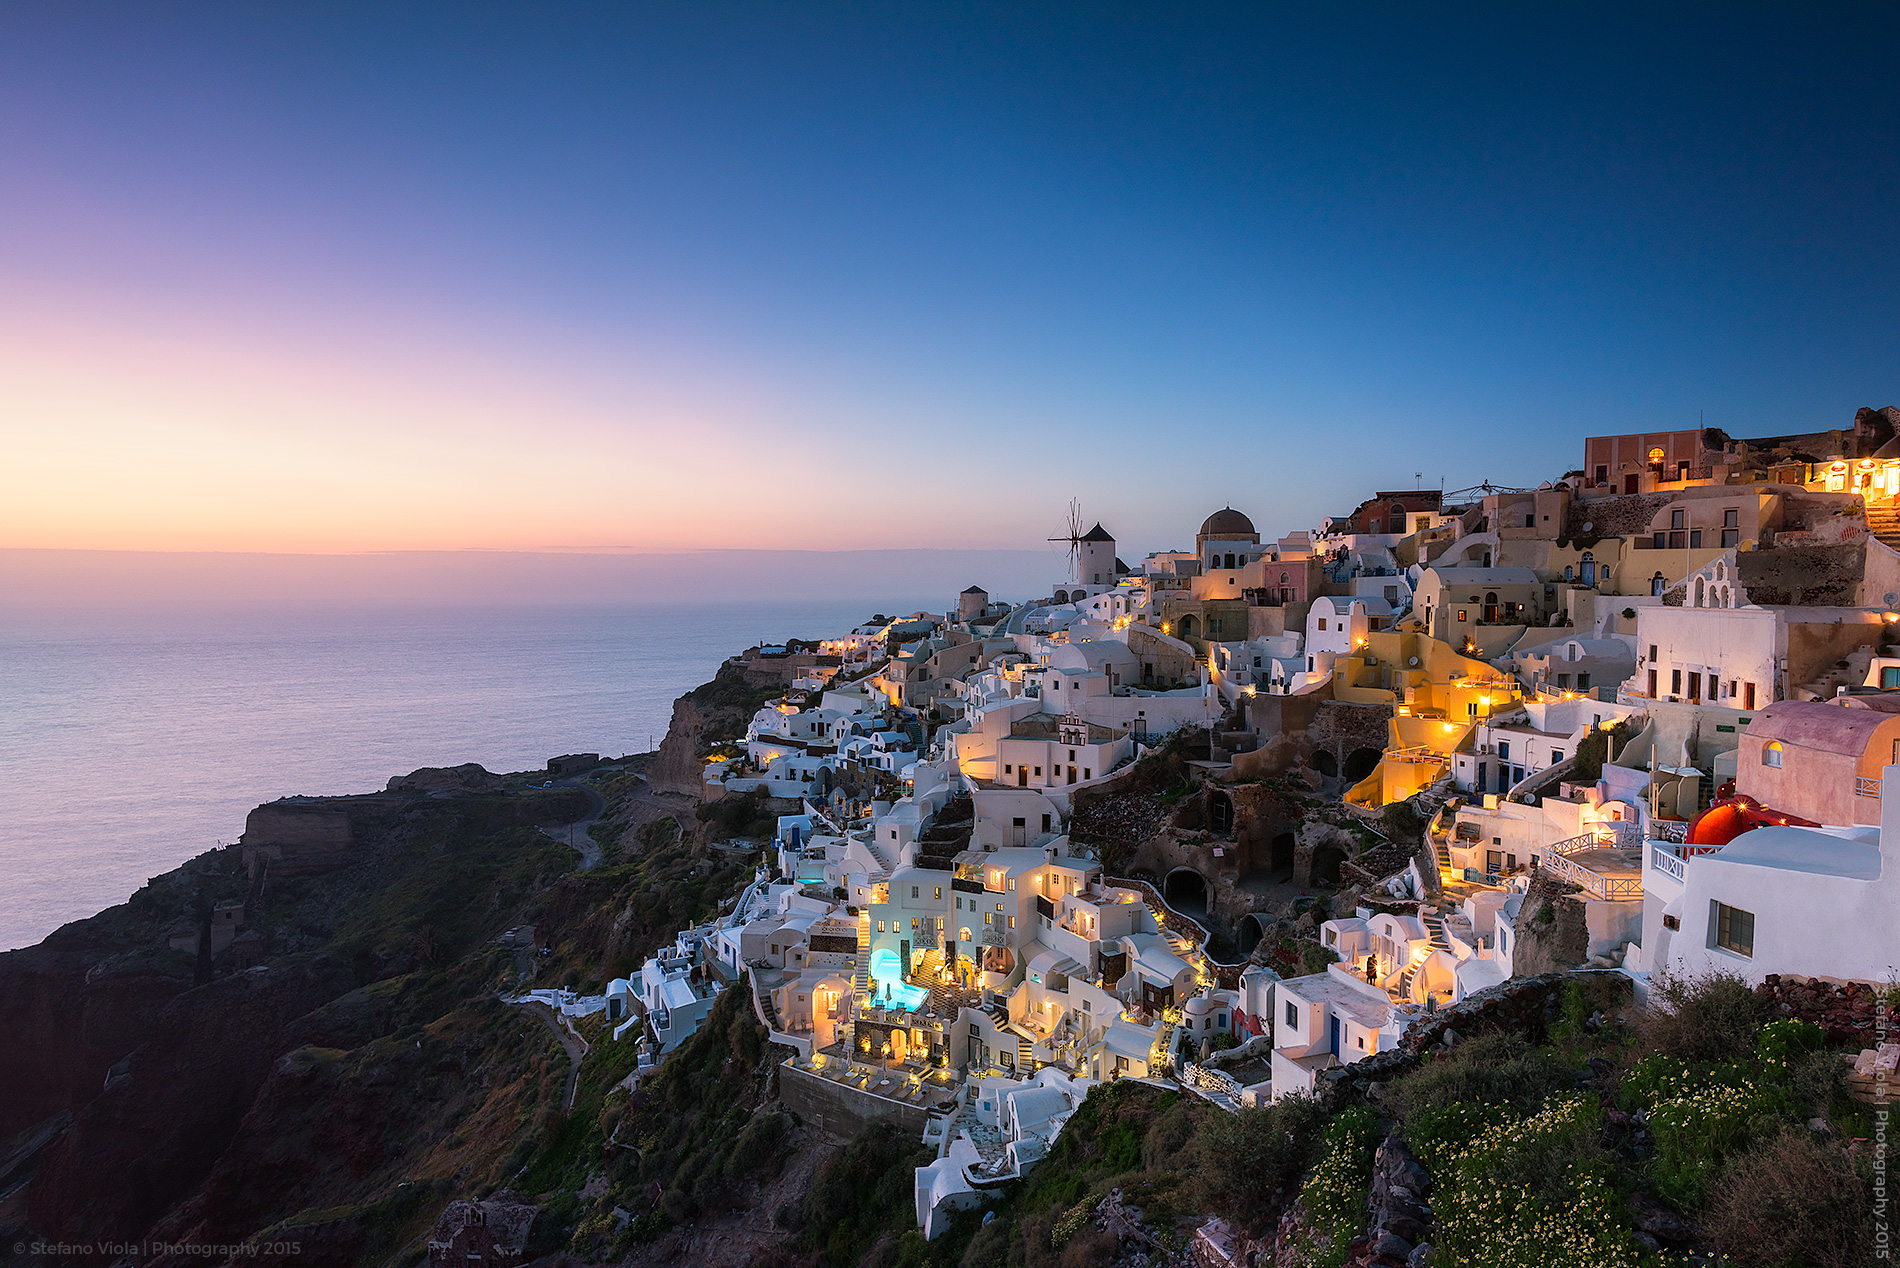 Greece (Santorini)